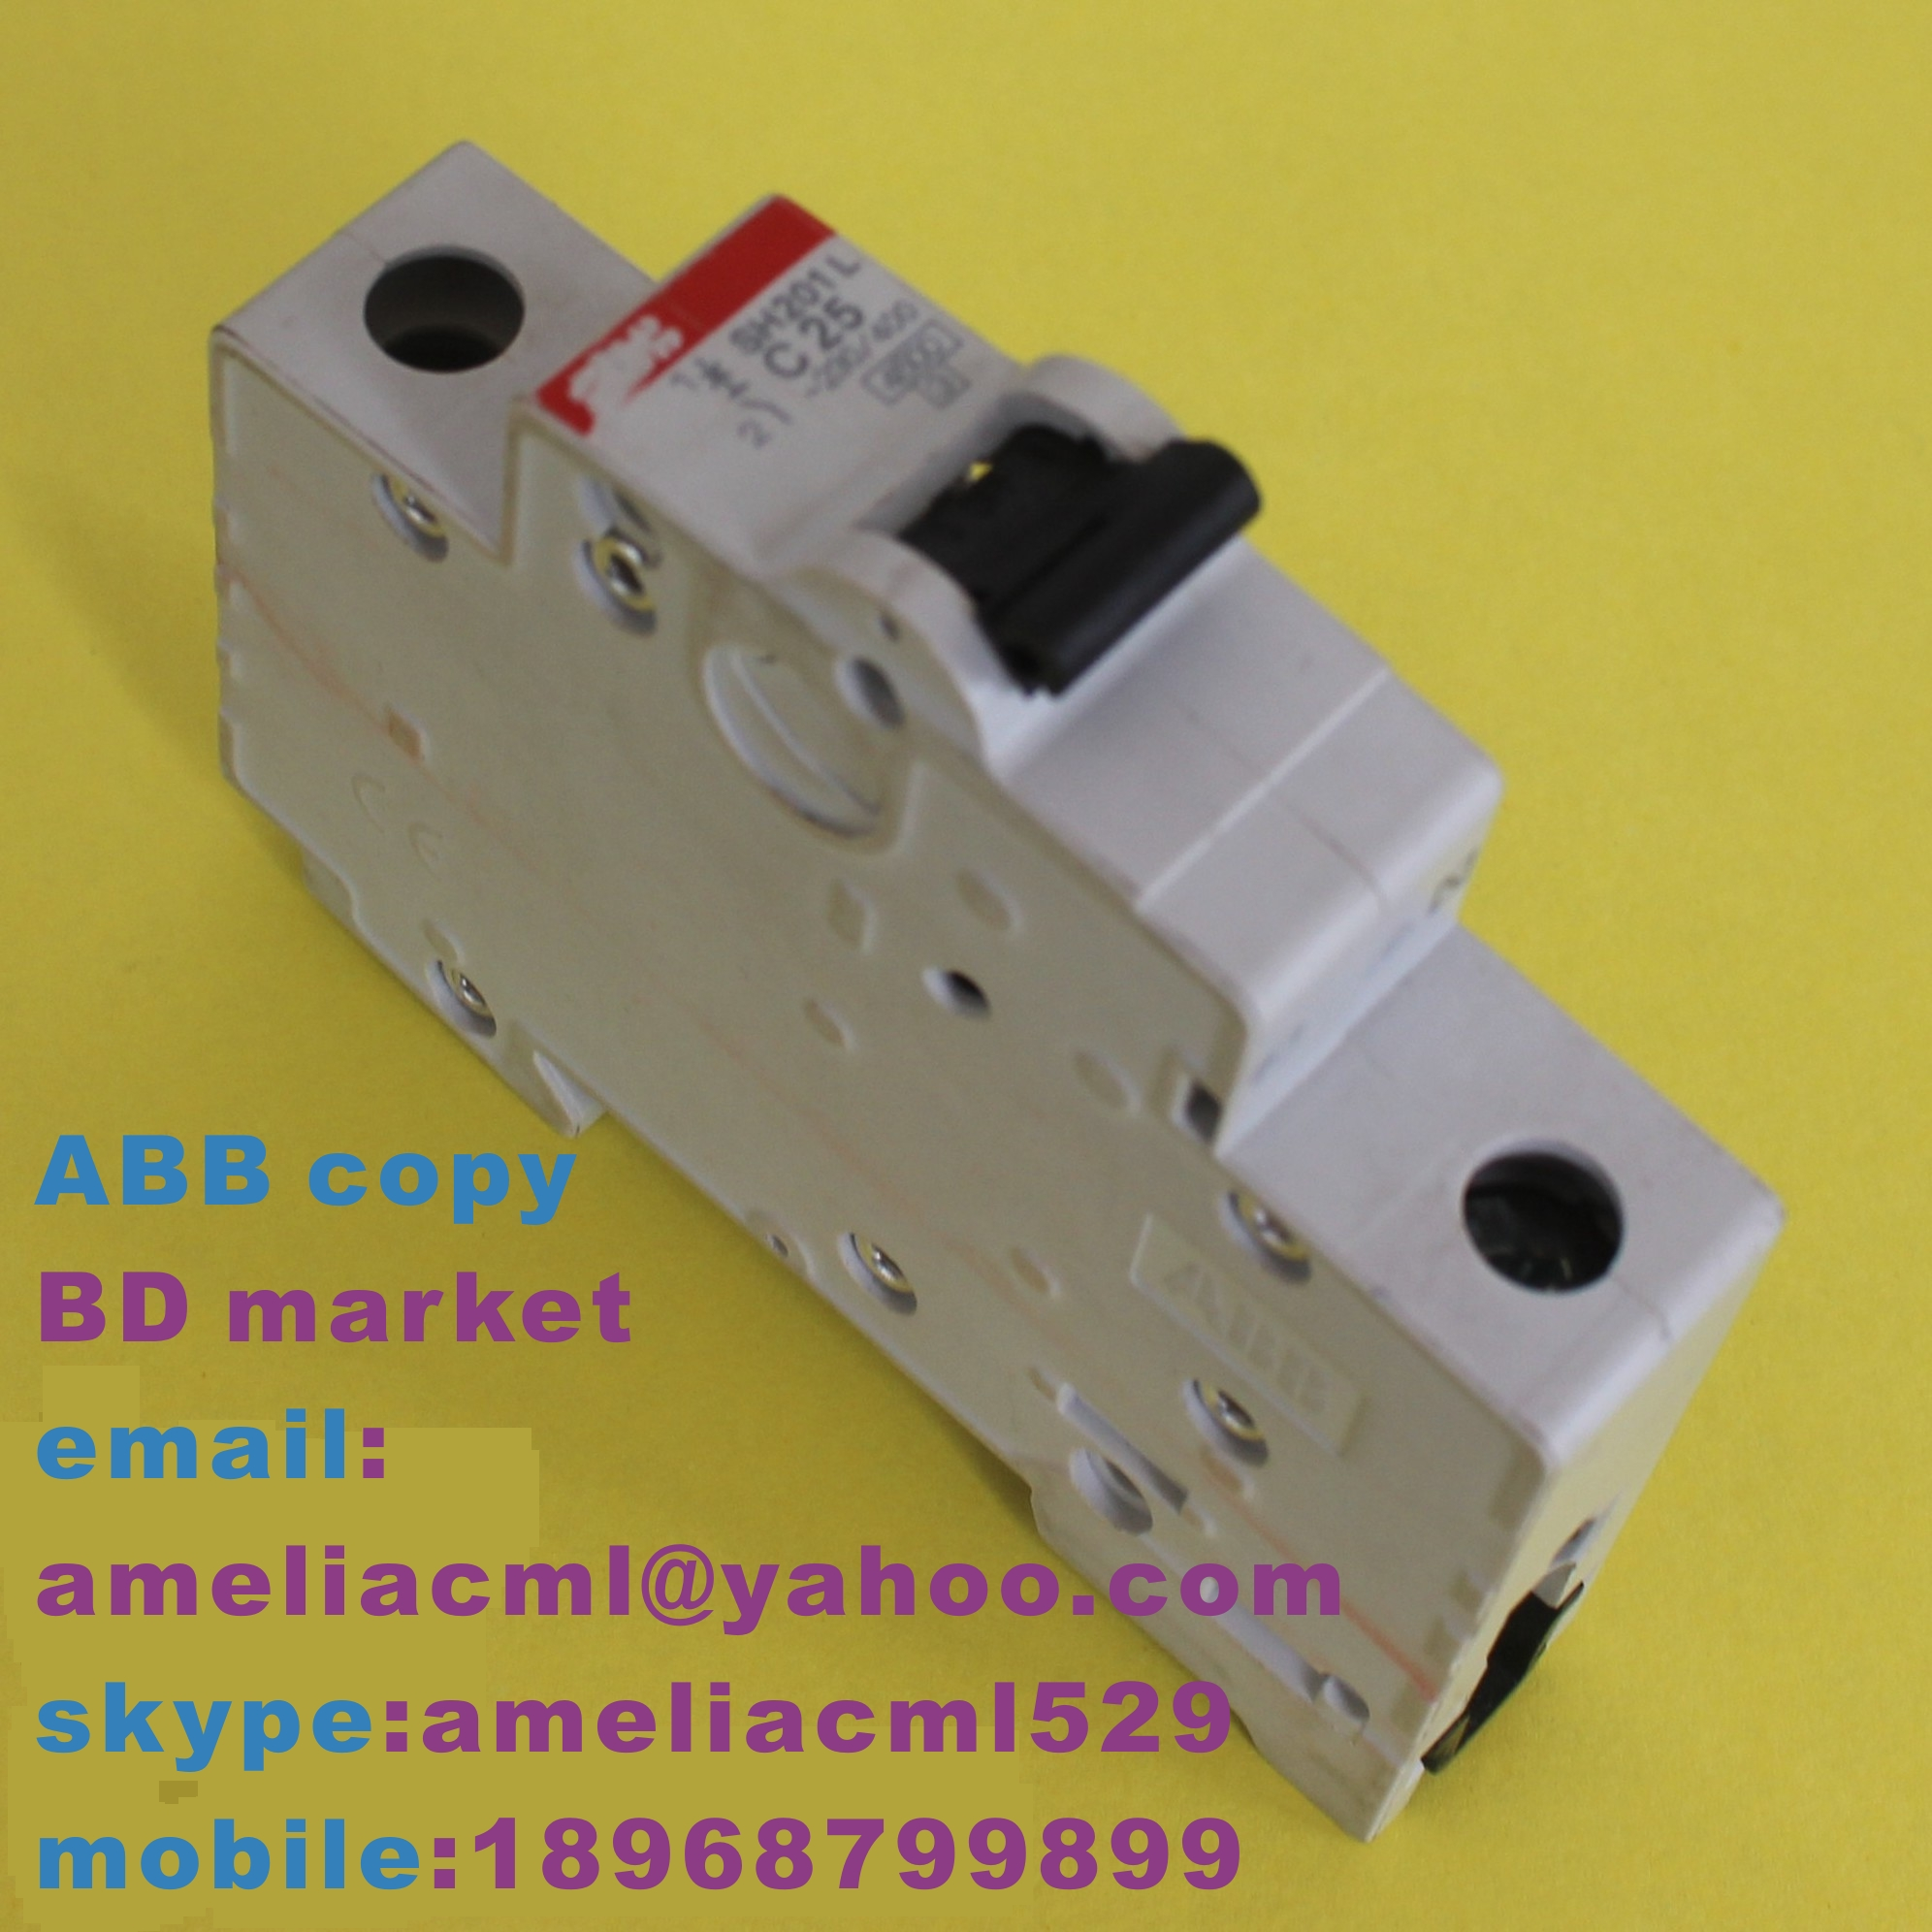 ABB SH201 MINIATURE CIRCUIT BREAKER